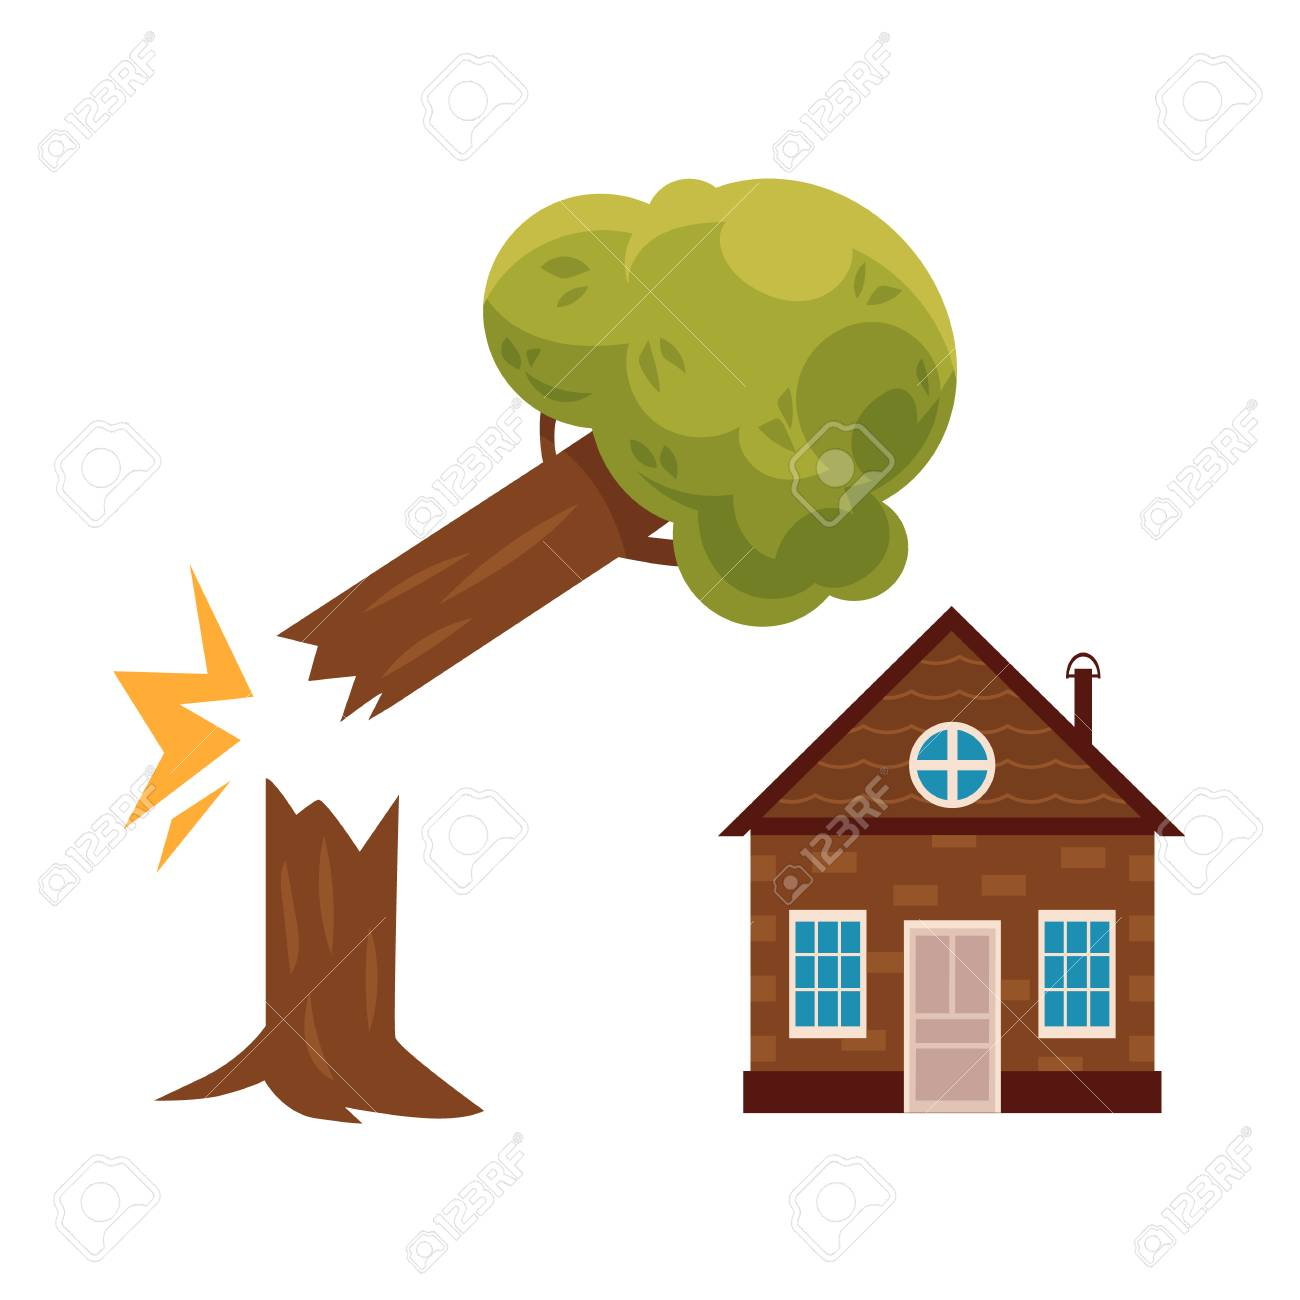 Broken Tree Falling On Cottage House Property Insurance Concept Royalty Free Cliparts Vectors And Stock Illustration Image 93758316 Seasonal symbol with leaves falling, beautiful cartoon artwork. broken tree falling on cottage house property insurance concept